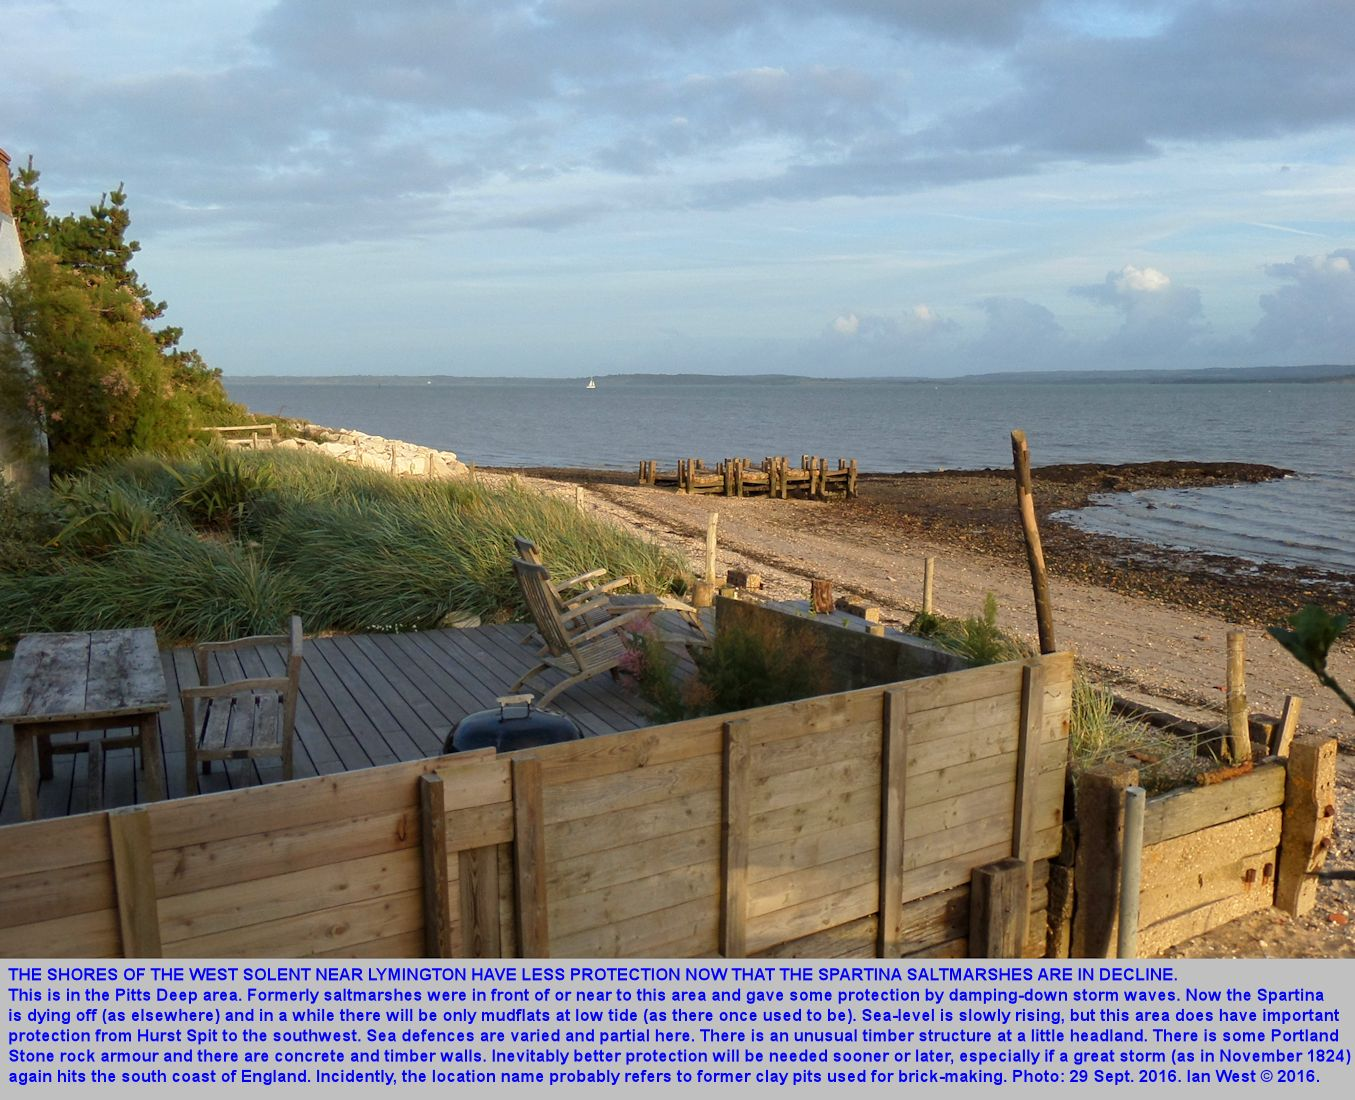 Some sea defence measures at Pitts Deep, West Solent Estuary, near Lymington, West Solent Estuary, southern England, 29th September 2016